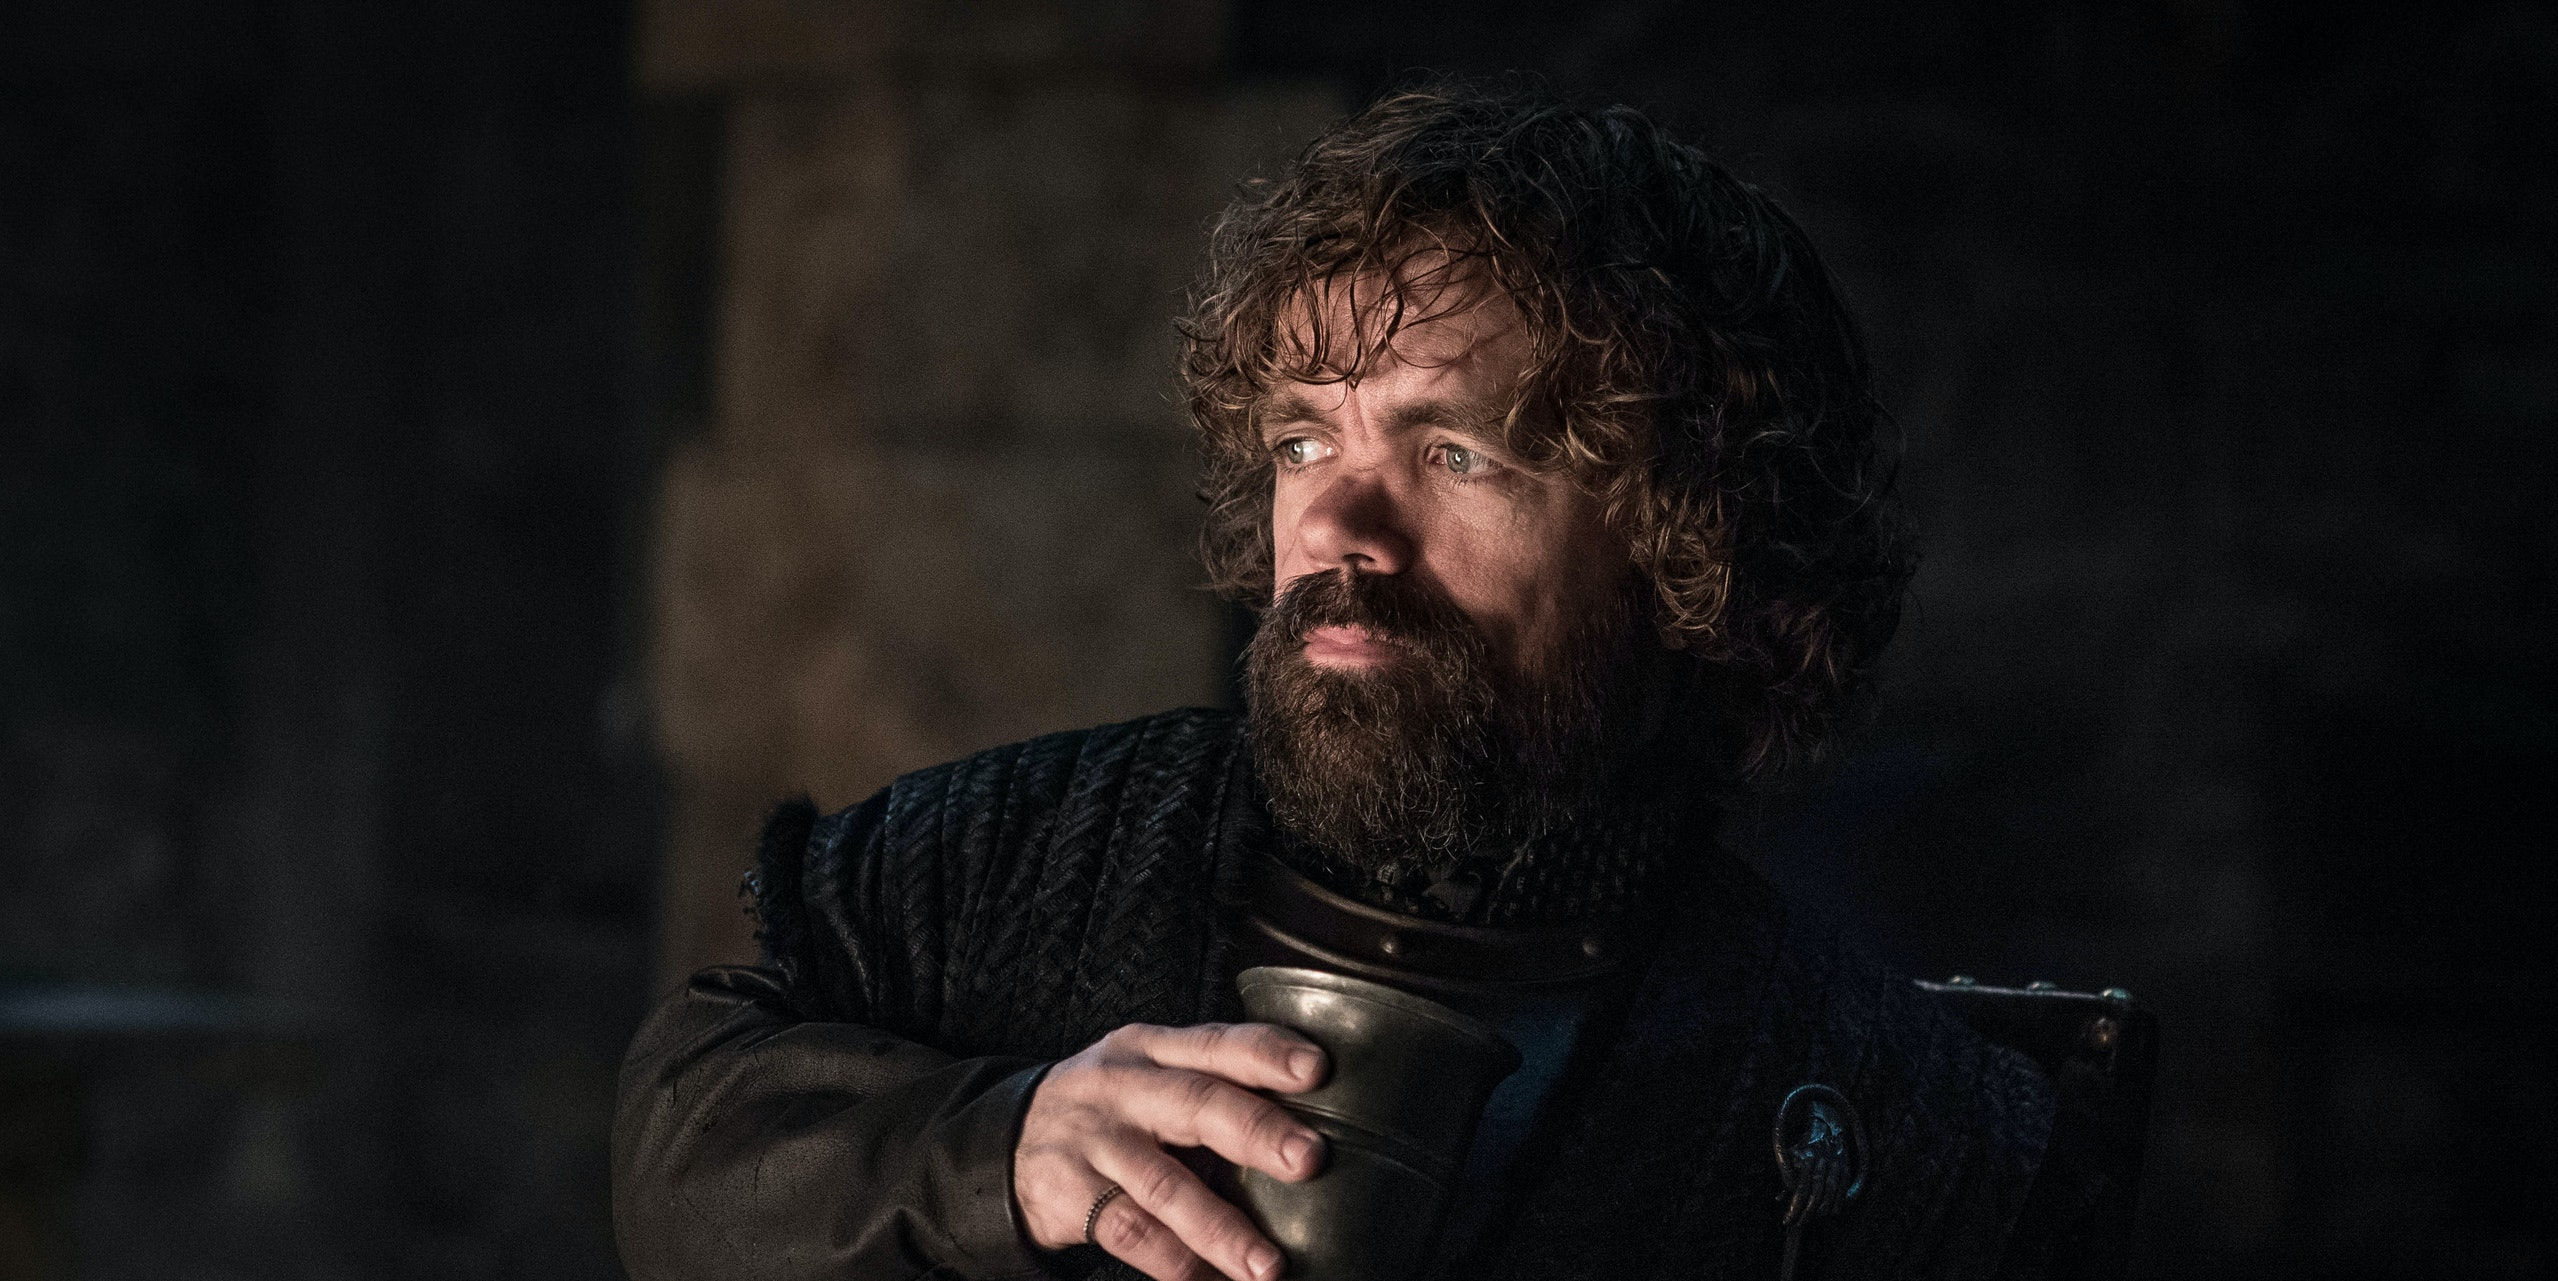 'Game of Thrones' Season 8, Episode 2 Begins the Battle of Winterfell